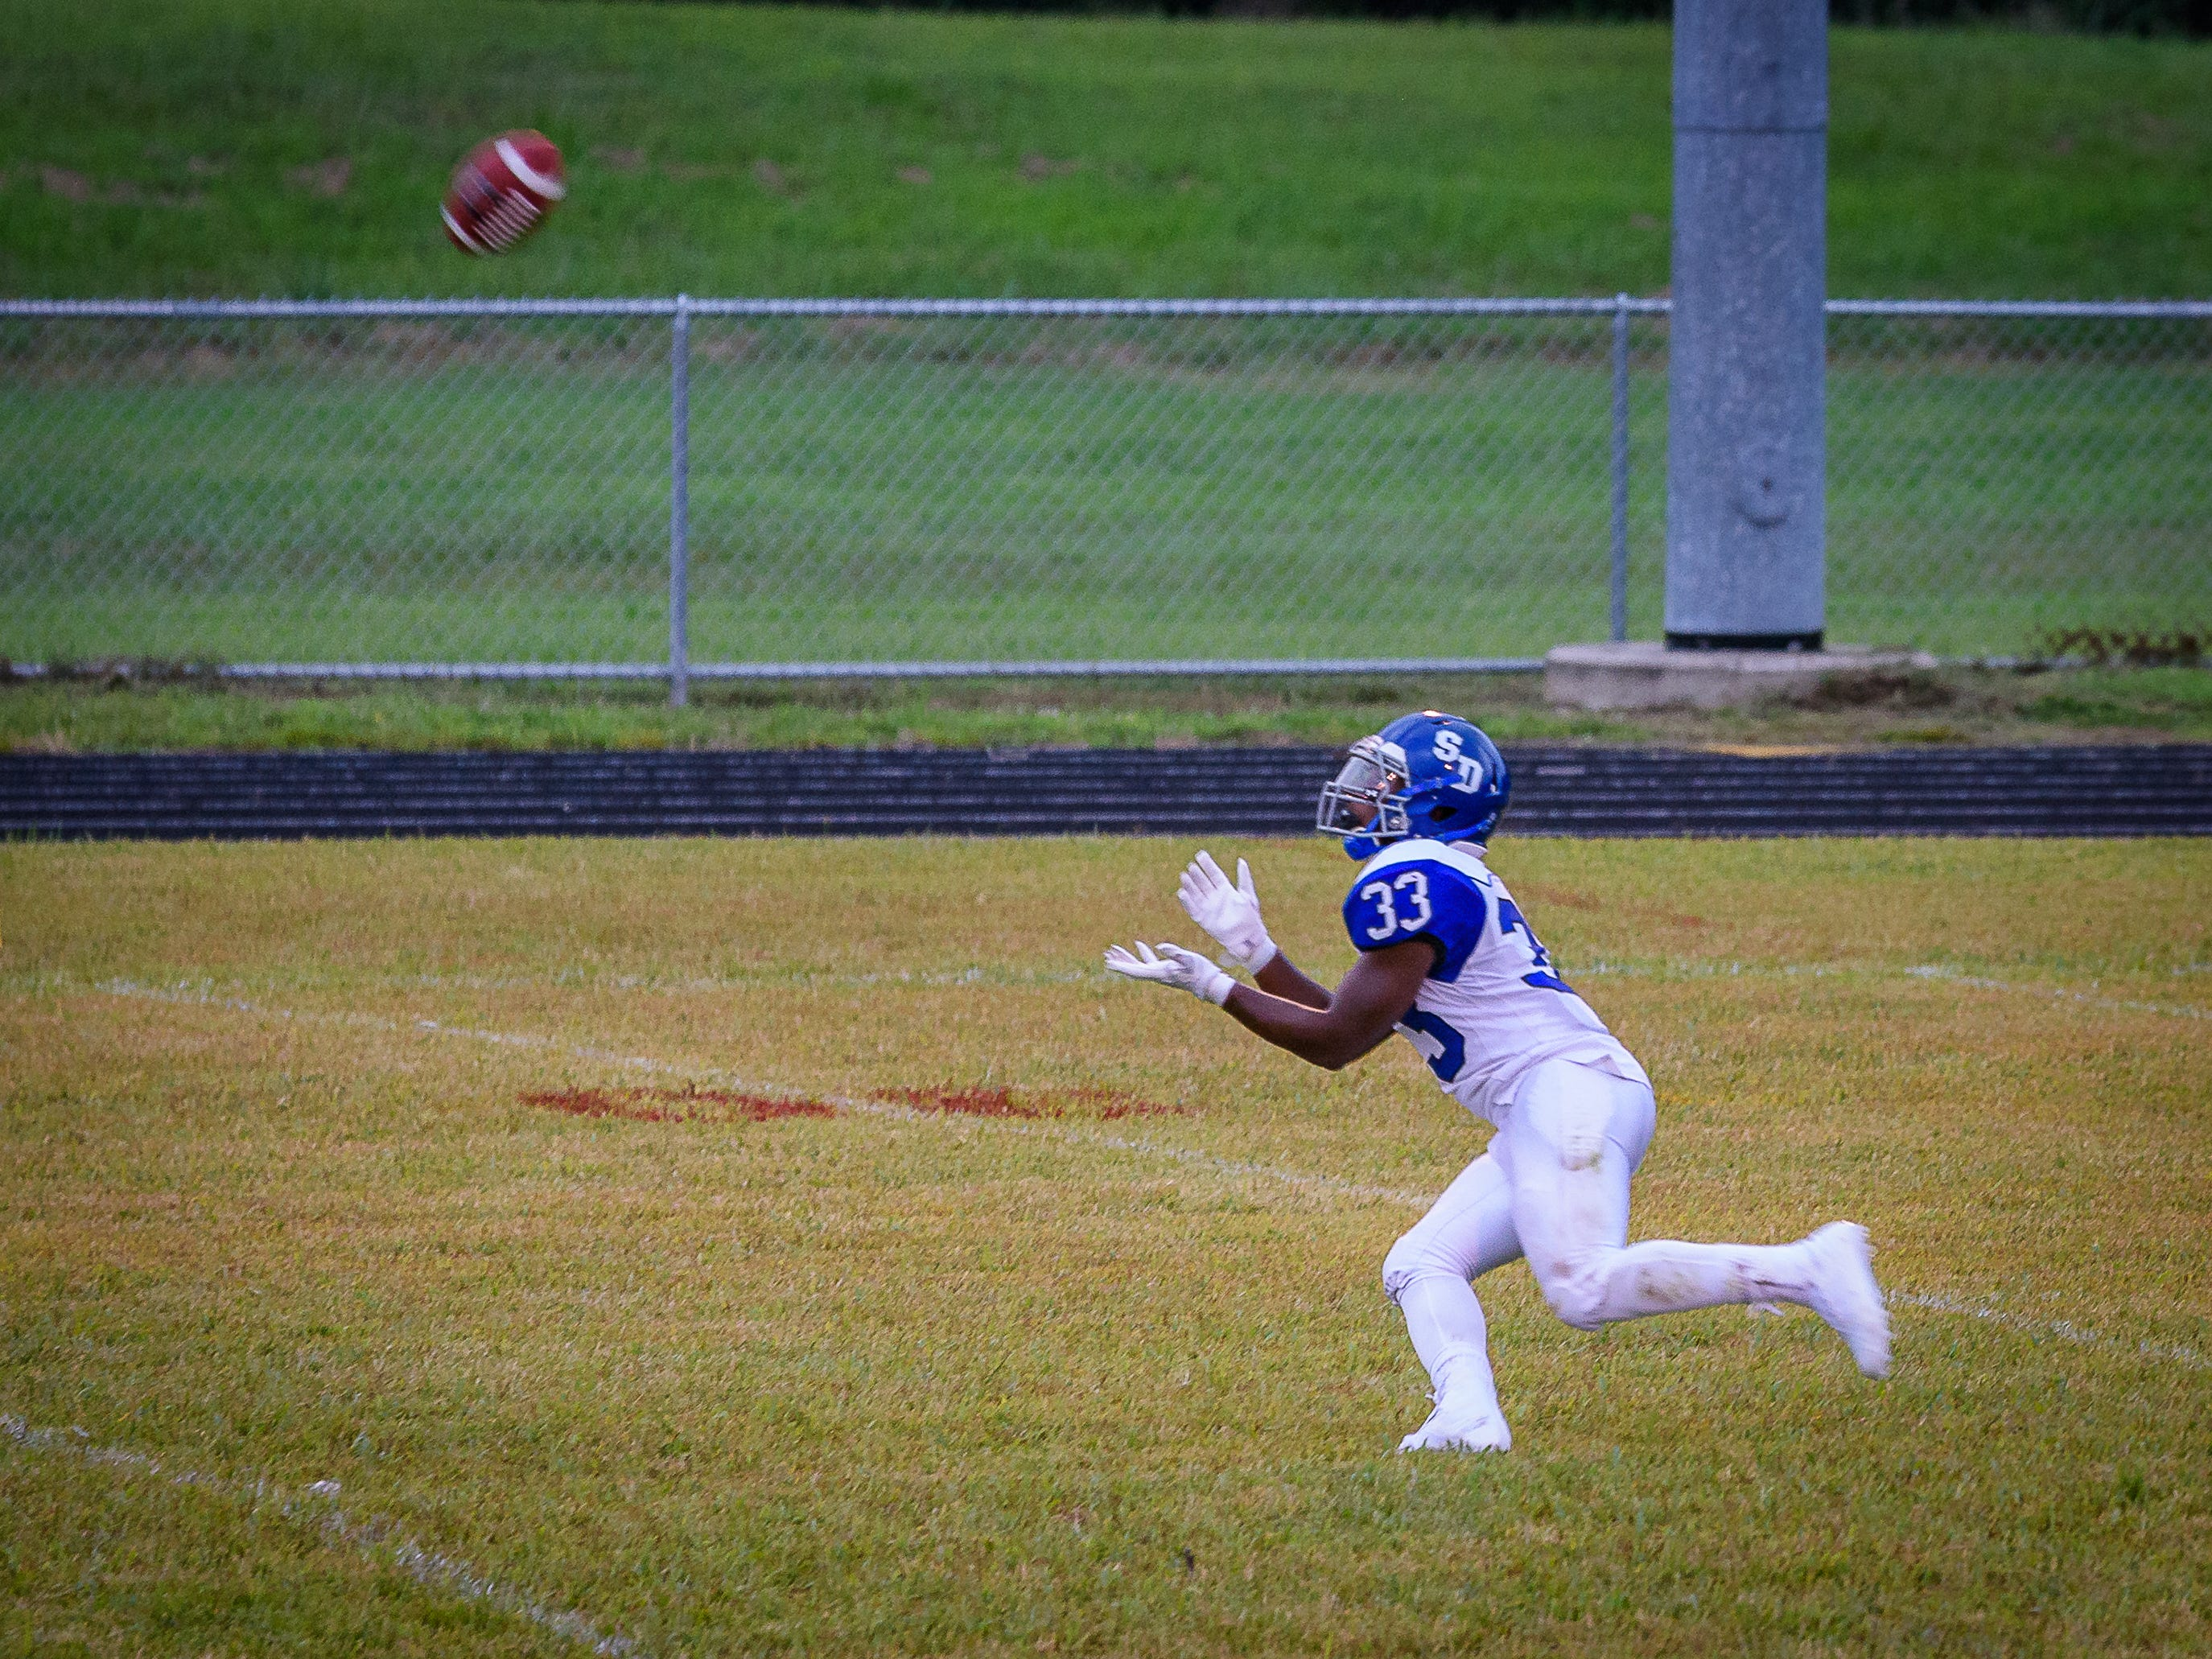 Stephen Decatur's Devin Waters gets under the ball after kickoff during the Berlin, Maryland, school's game at Arcadia High School on Friday, Aug. 31. Decatur won the game 58-20.